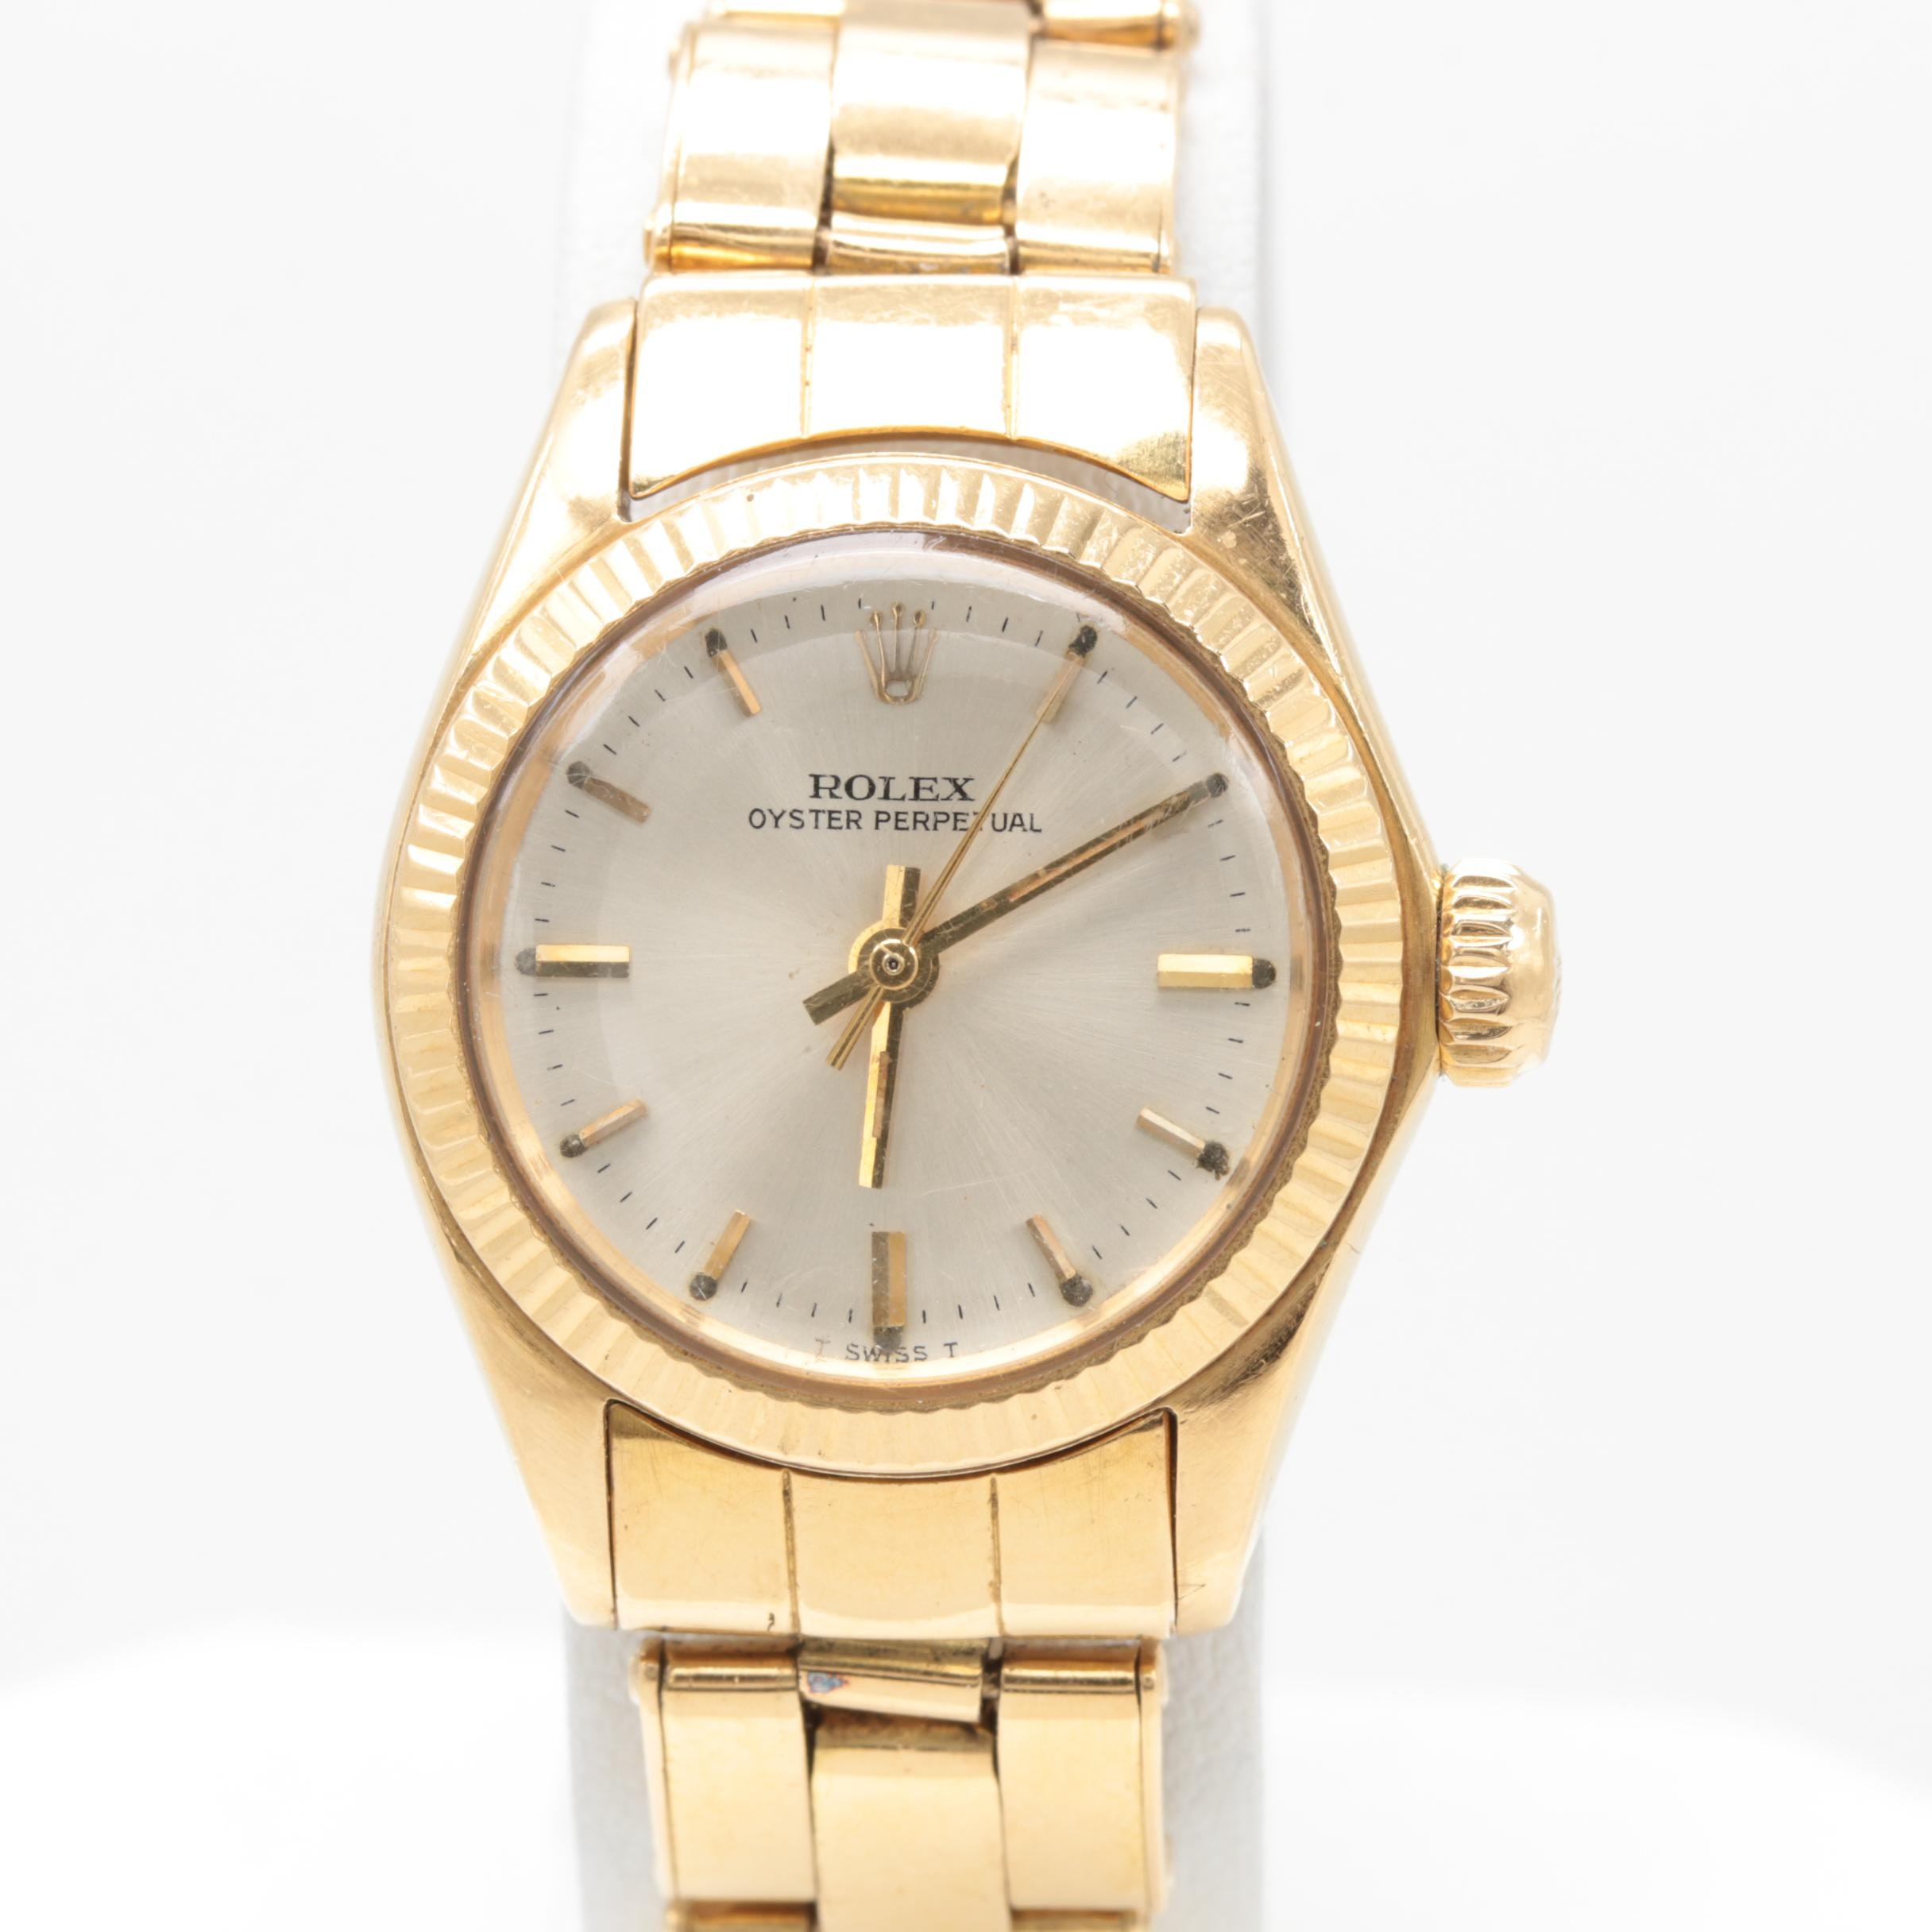 Circa 1966 Rolex Oyster Perpetual 18K Yellow Gold Silver Tone Dial Wristwatch